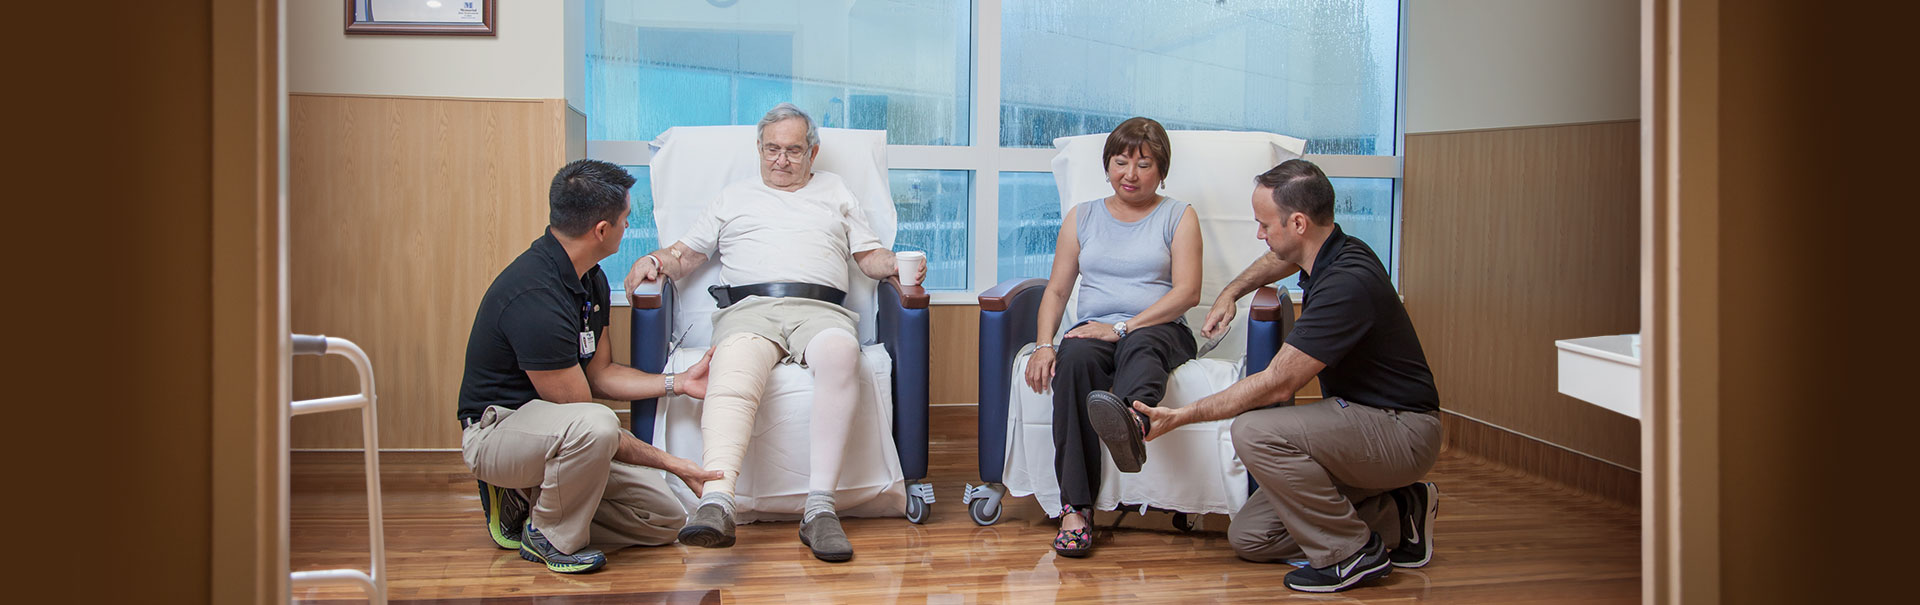 Patients in Joint Replacement Center